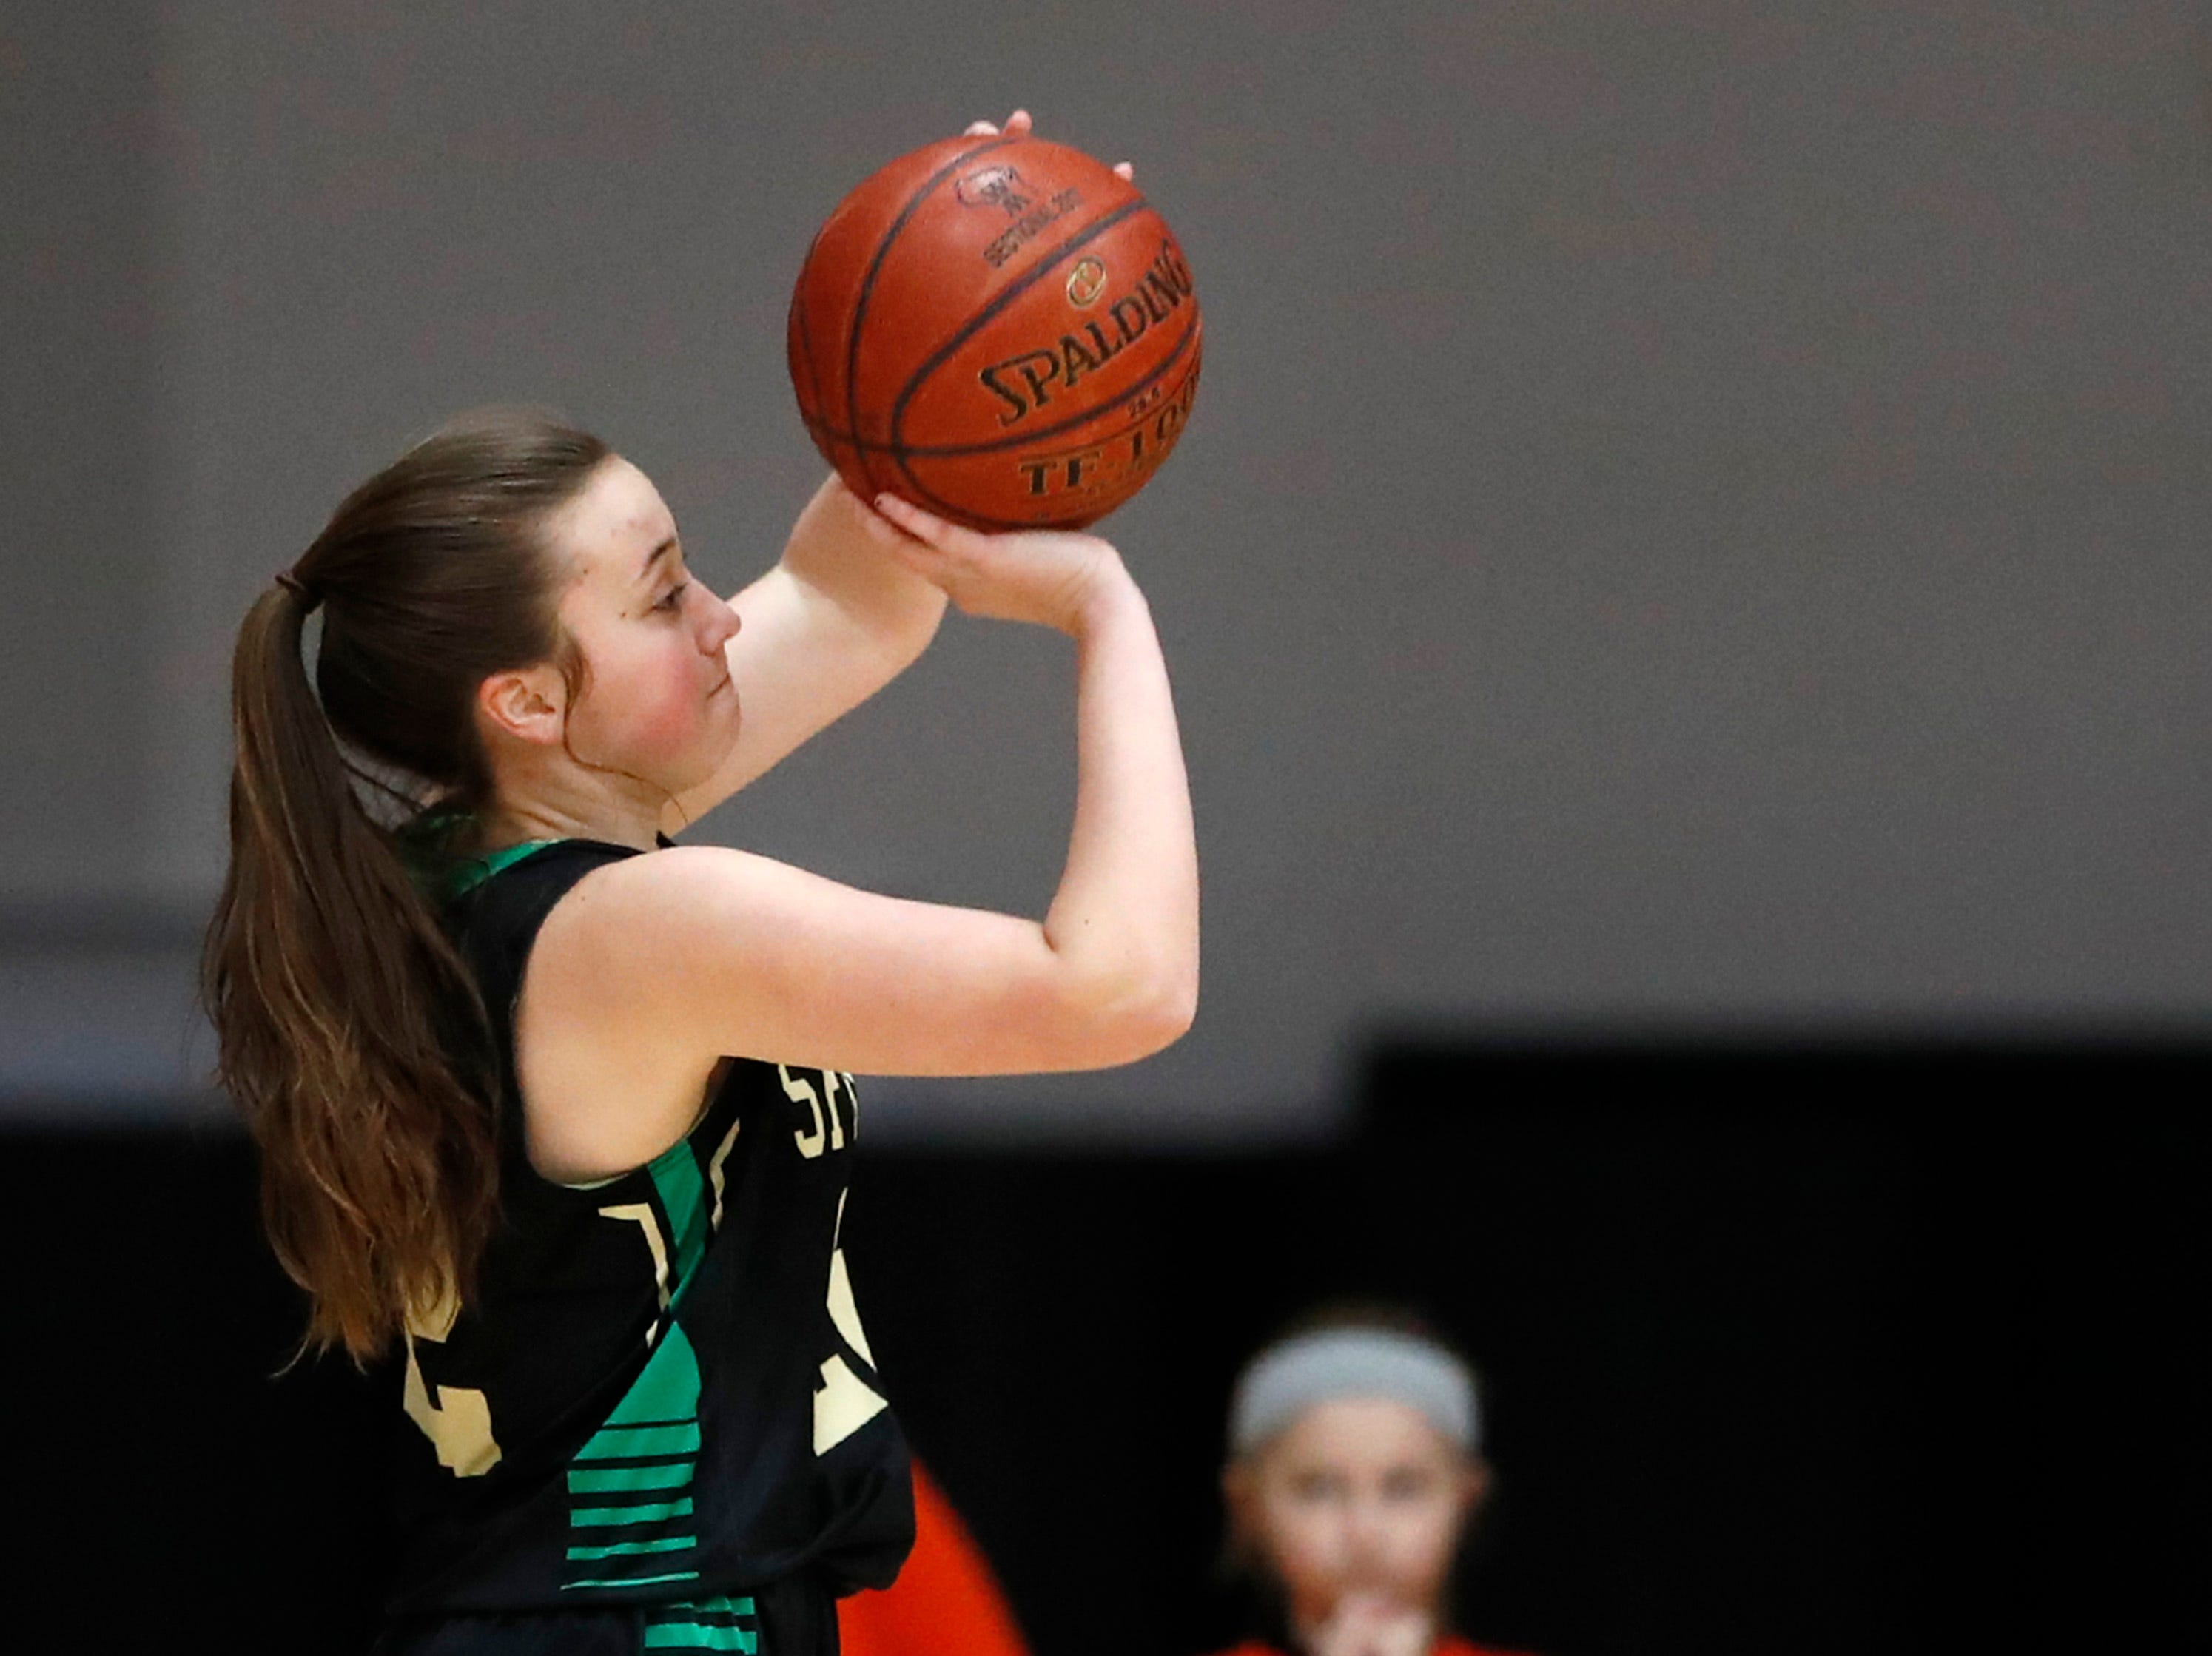 Oshkosh North High SchoolÕs Emma Leib takes a shot against Kaukauna High School Tuesday, Feb. 5, 2019, in Kaukauna, Wis. Oshkosh North defeated Kaukauna High School 77-51.